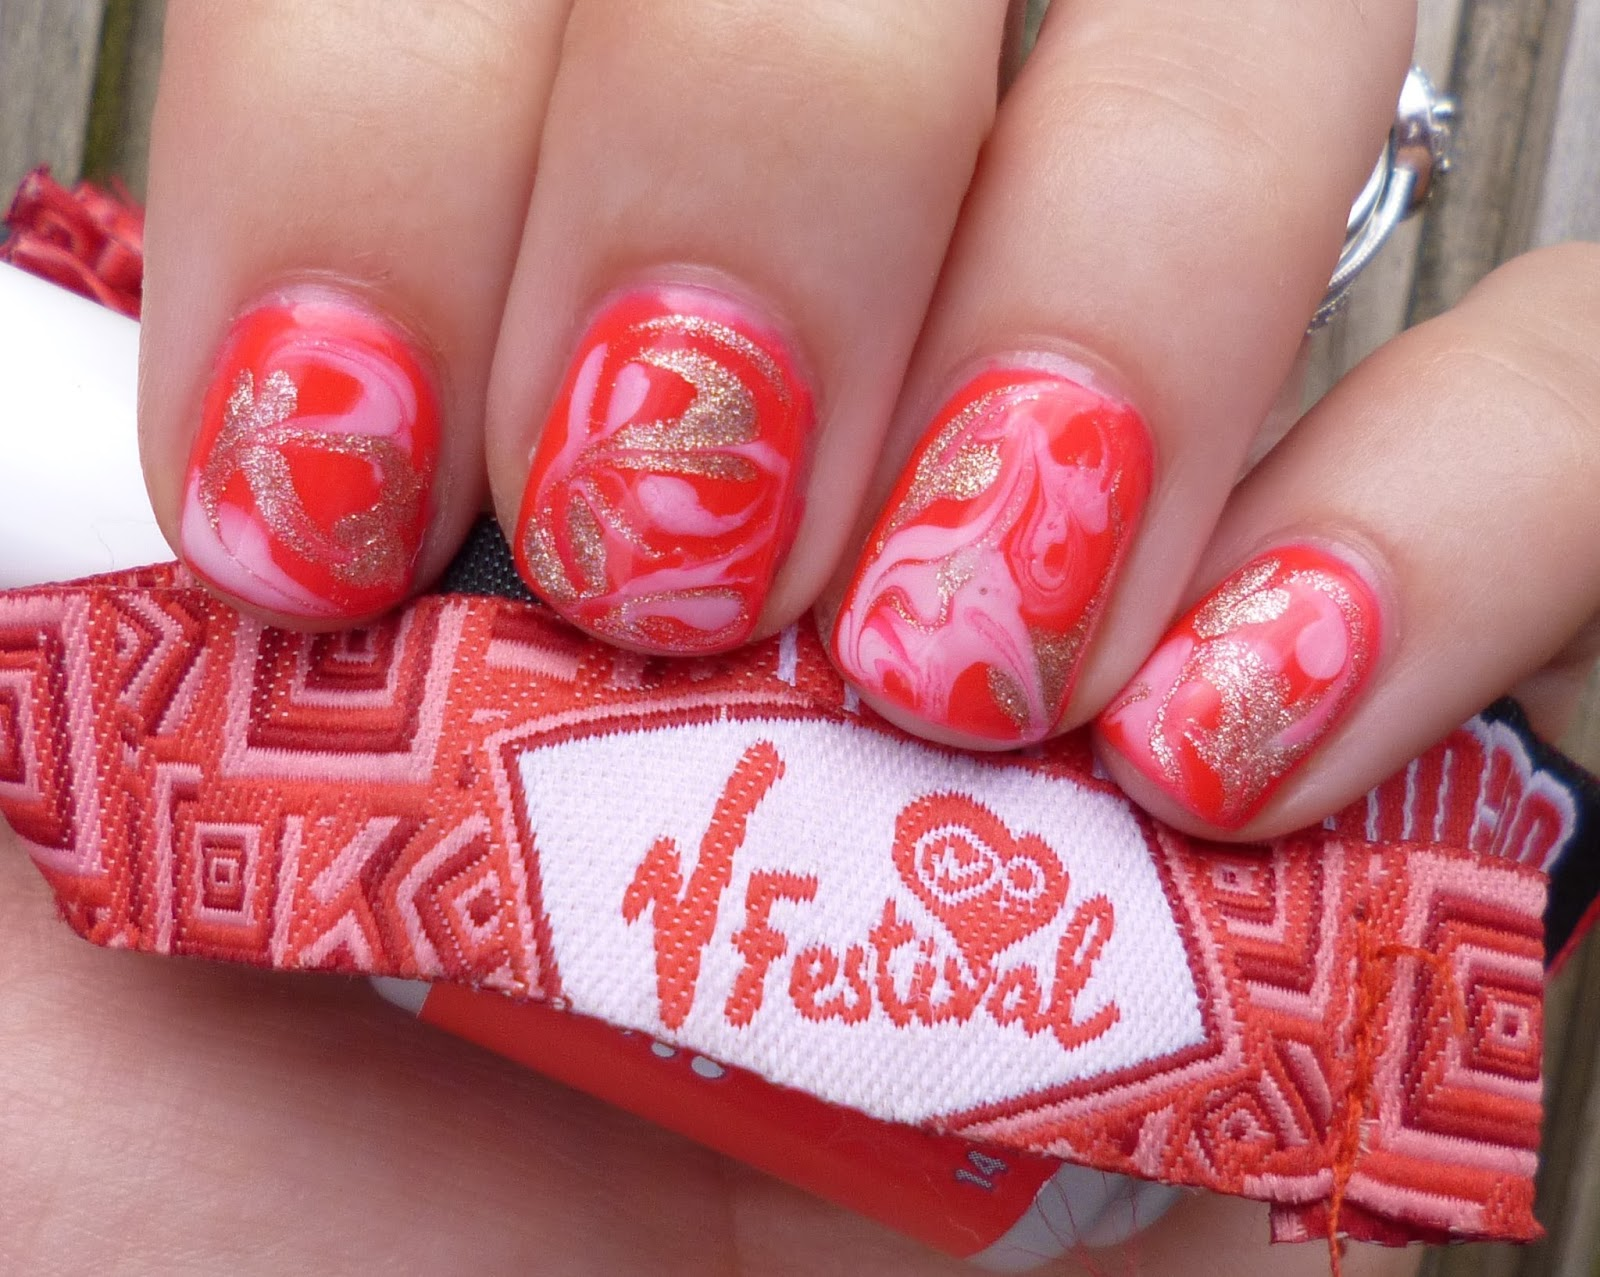 Lou is perfectly polished water marbled gel nails v festival style this is the first time i have worn gel nails myself and they were so ideal for a long weekend of camping i am a trained nail tech and do lots sets solutioingenieria Image collections